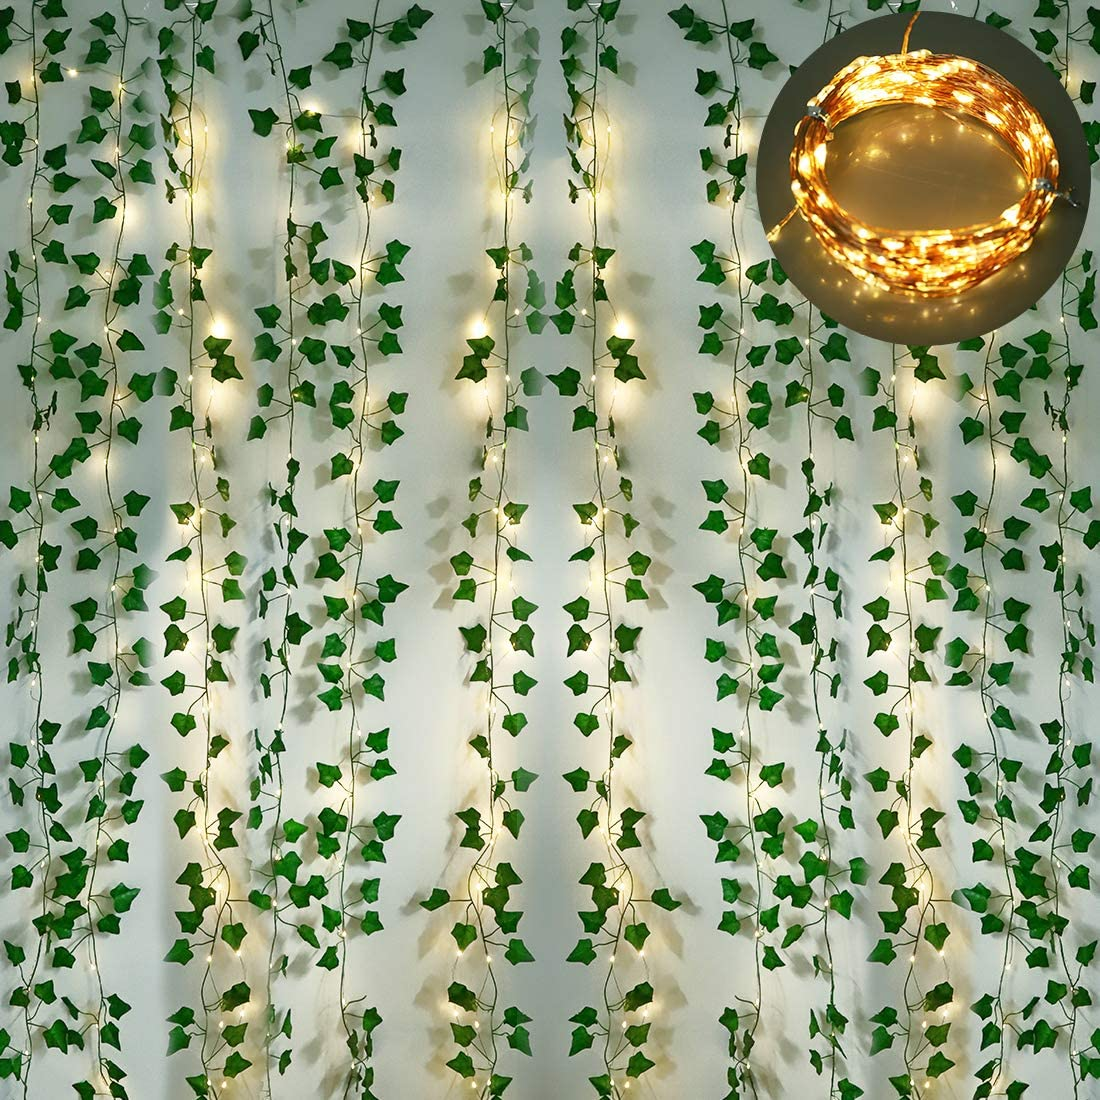 Onsucum 12 Strands Artificial Ivy Garland, Fake Vines Leaves Hanging Plants with 200 LED 64 Ft String Lights for Room Bedroom Kitchen Garden Office Wedding Wall Outdoor Decor, Green